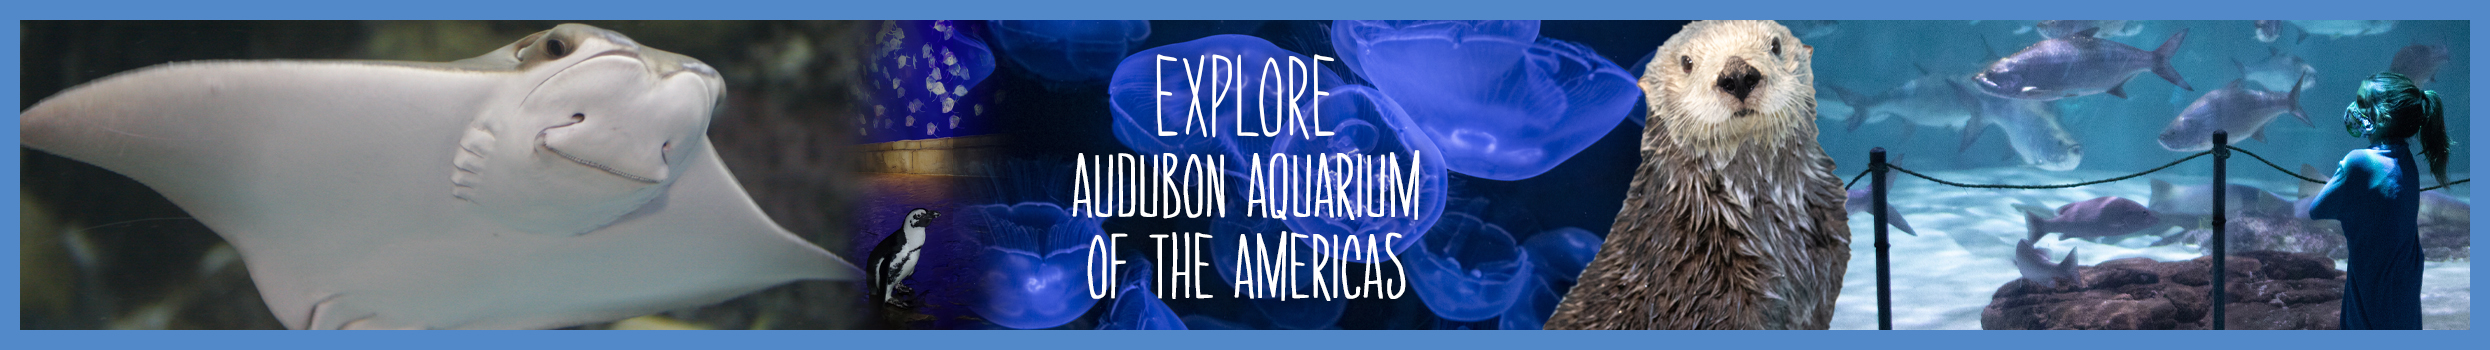 aquarium-explore-header-slider